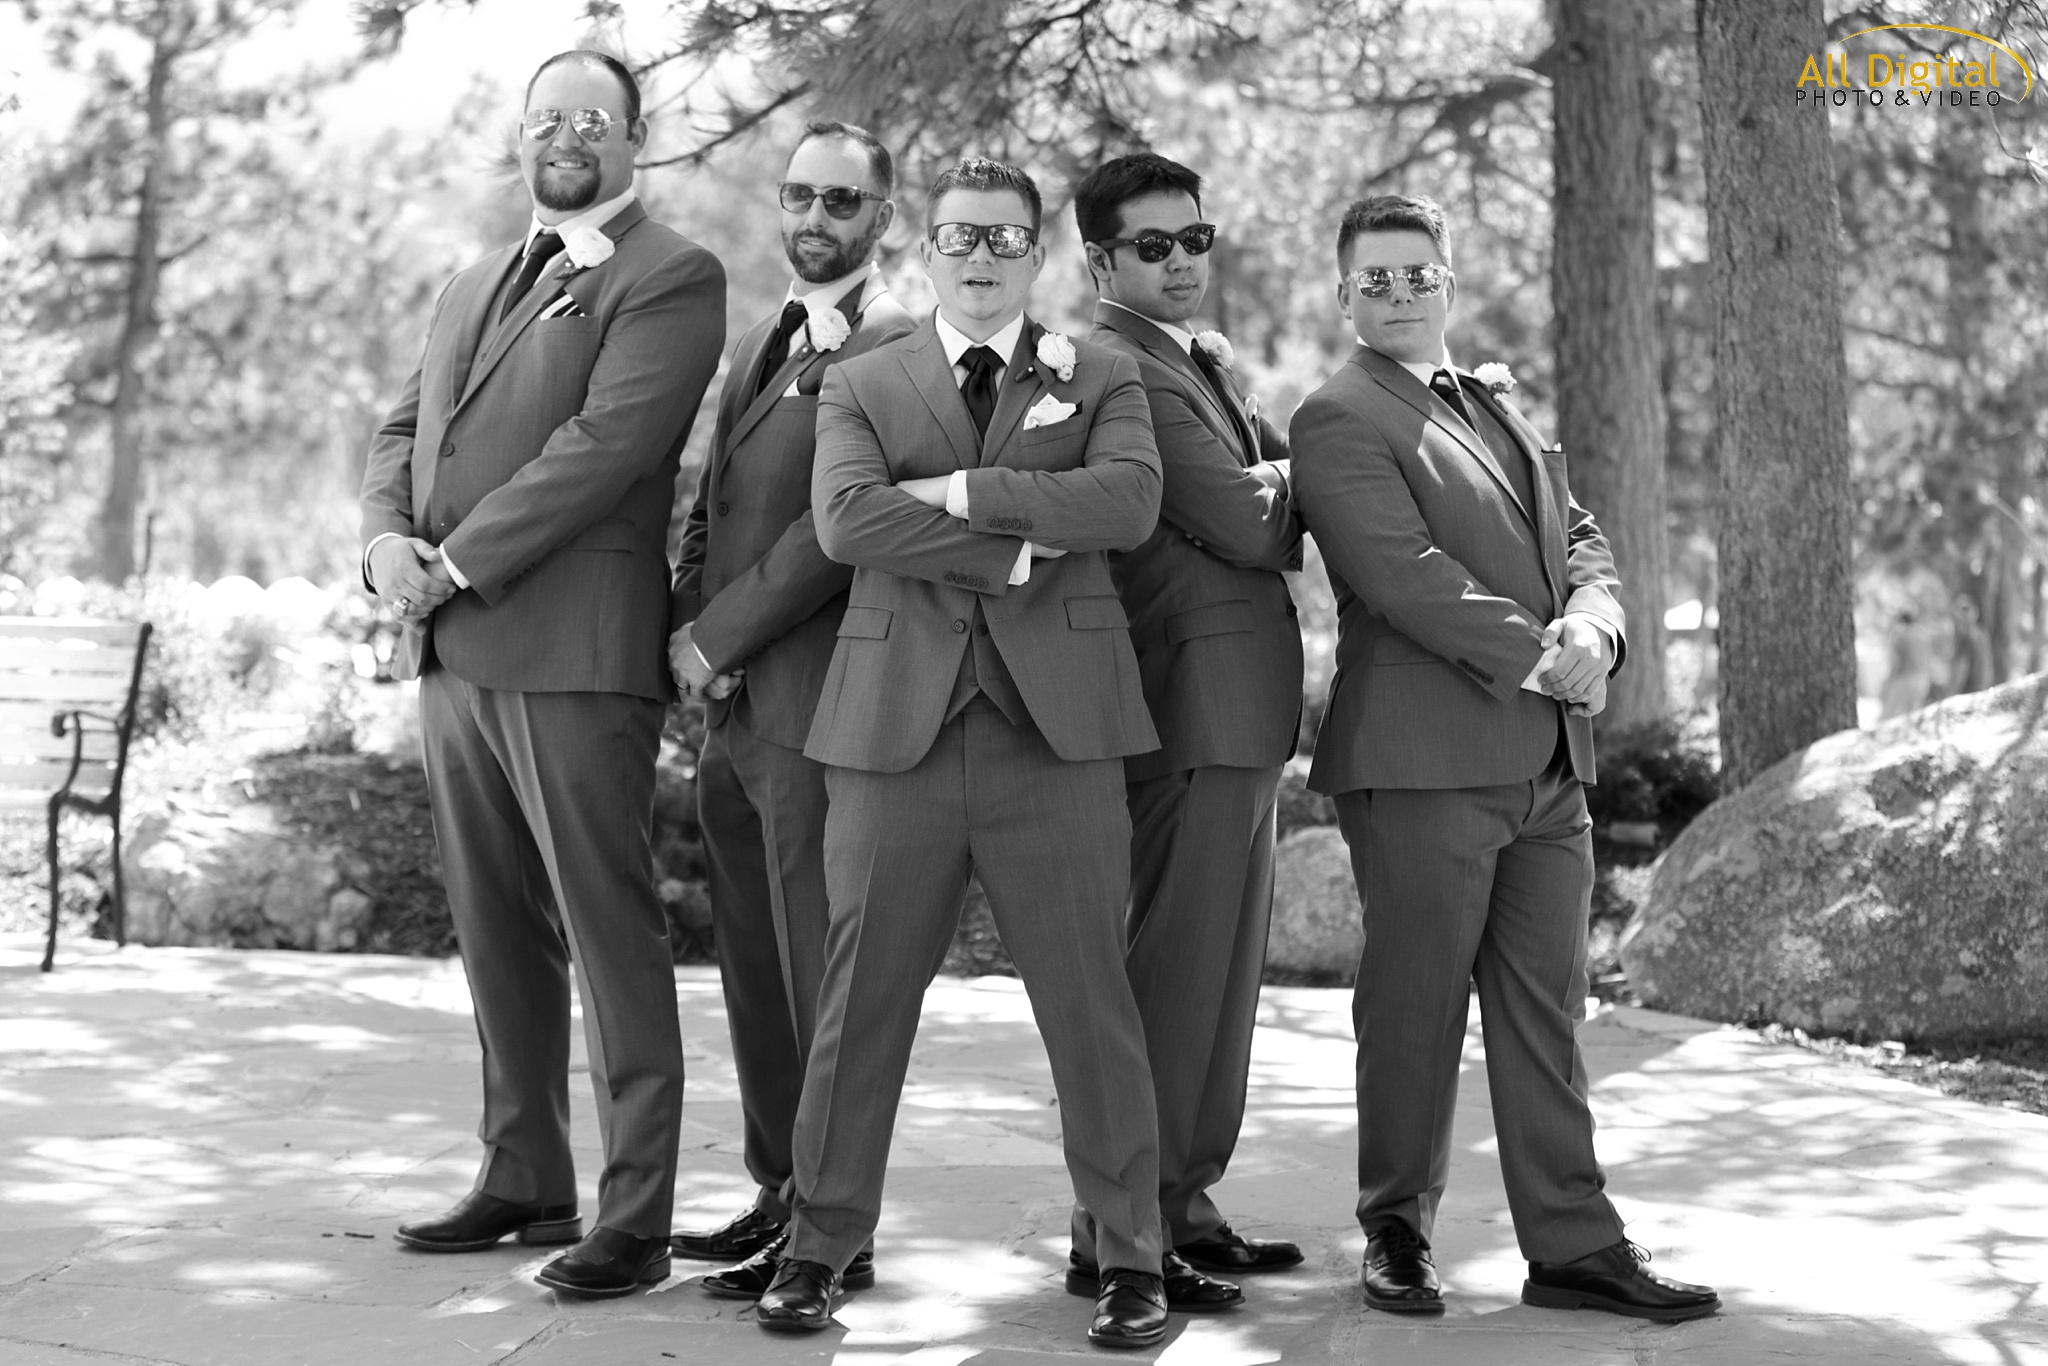 Brian & Groomsmen at the Stanley Hotel in Estes Park, Colorado